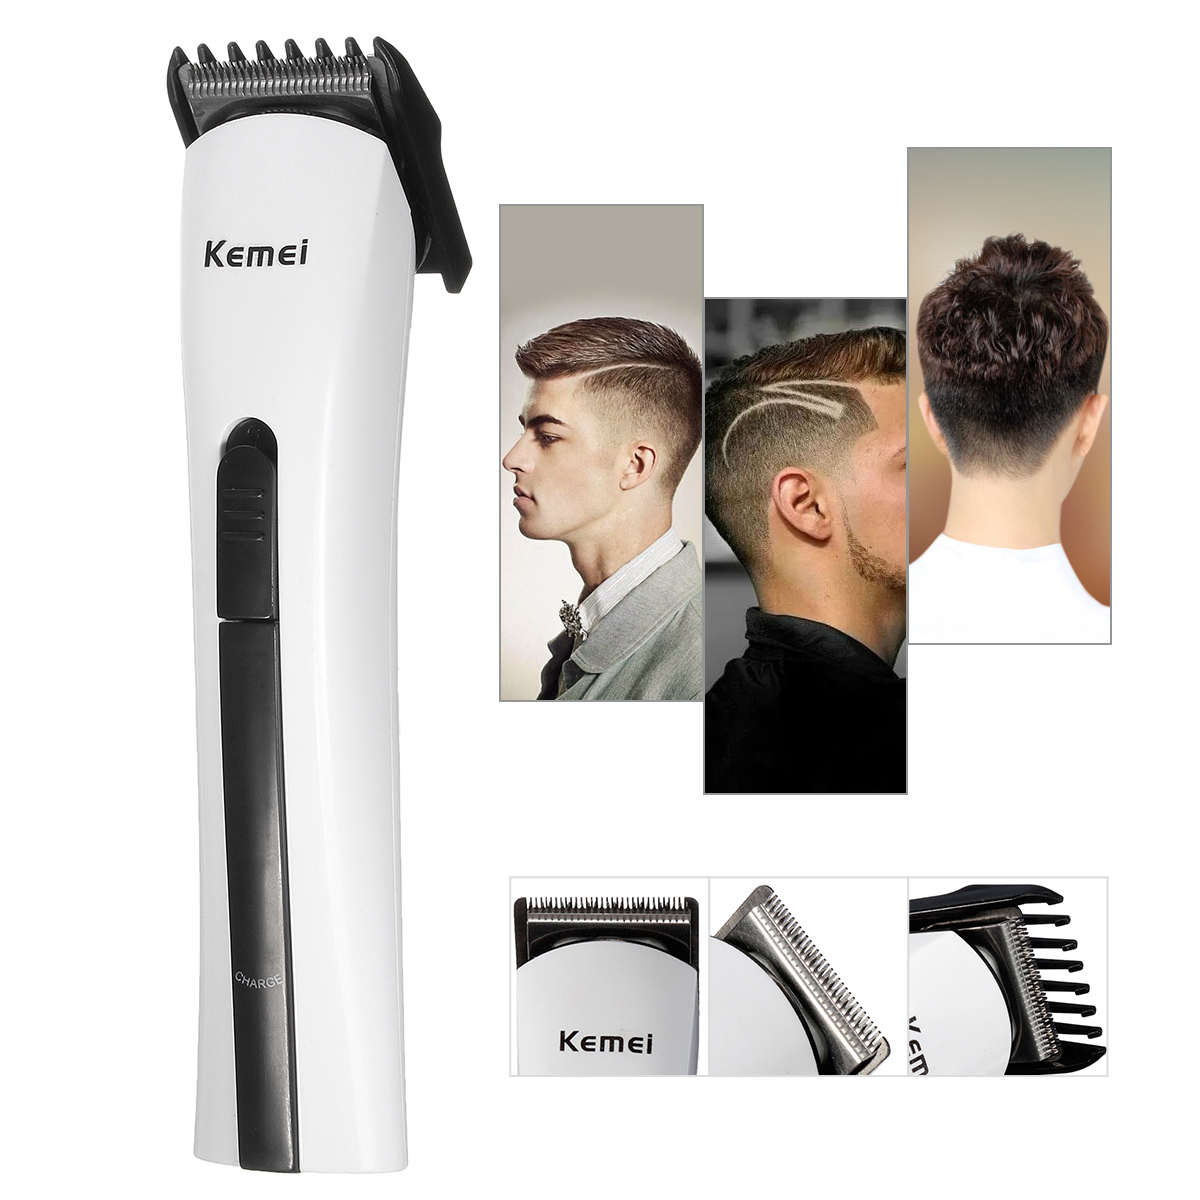 Kemei AC220-240V Hair Trimmer Professional Hair Clipper Men Cordless Rechargeable Barber Scissors Razor GT-001 Haircut Machine